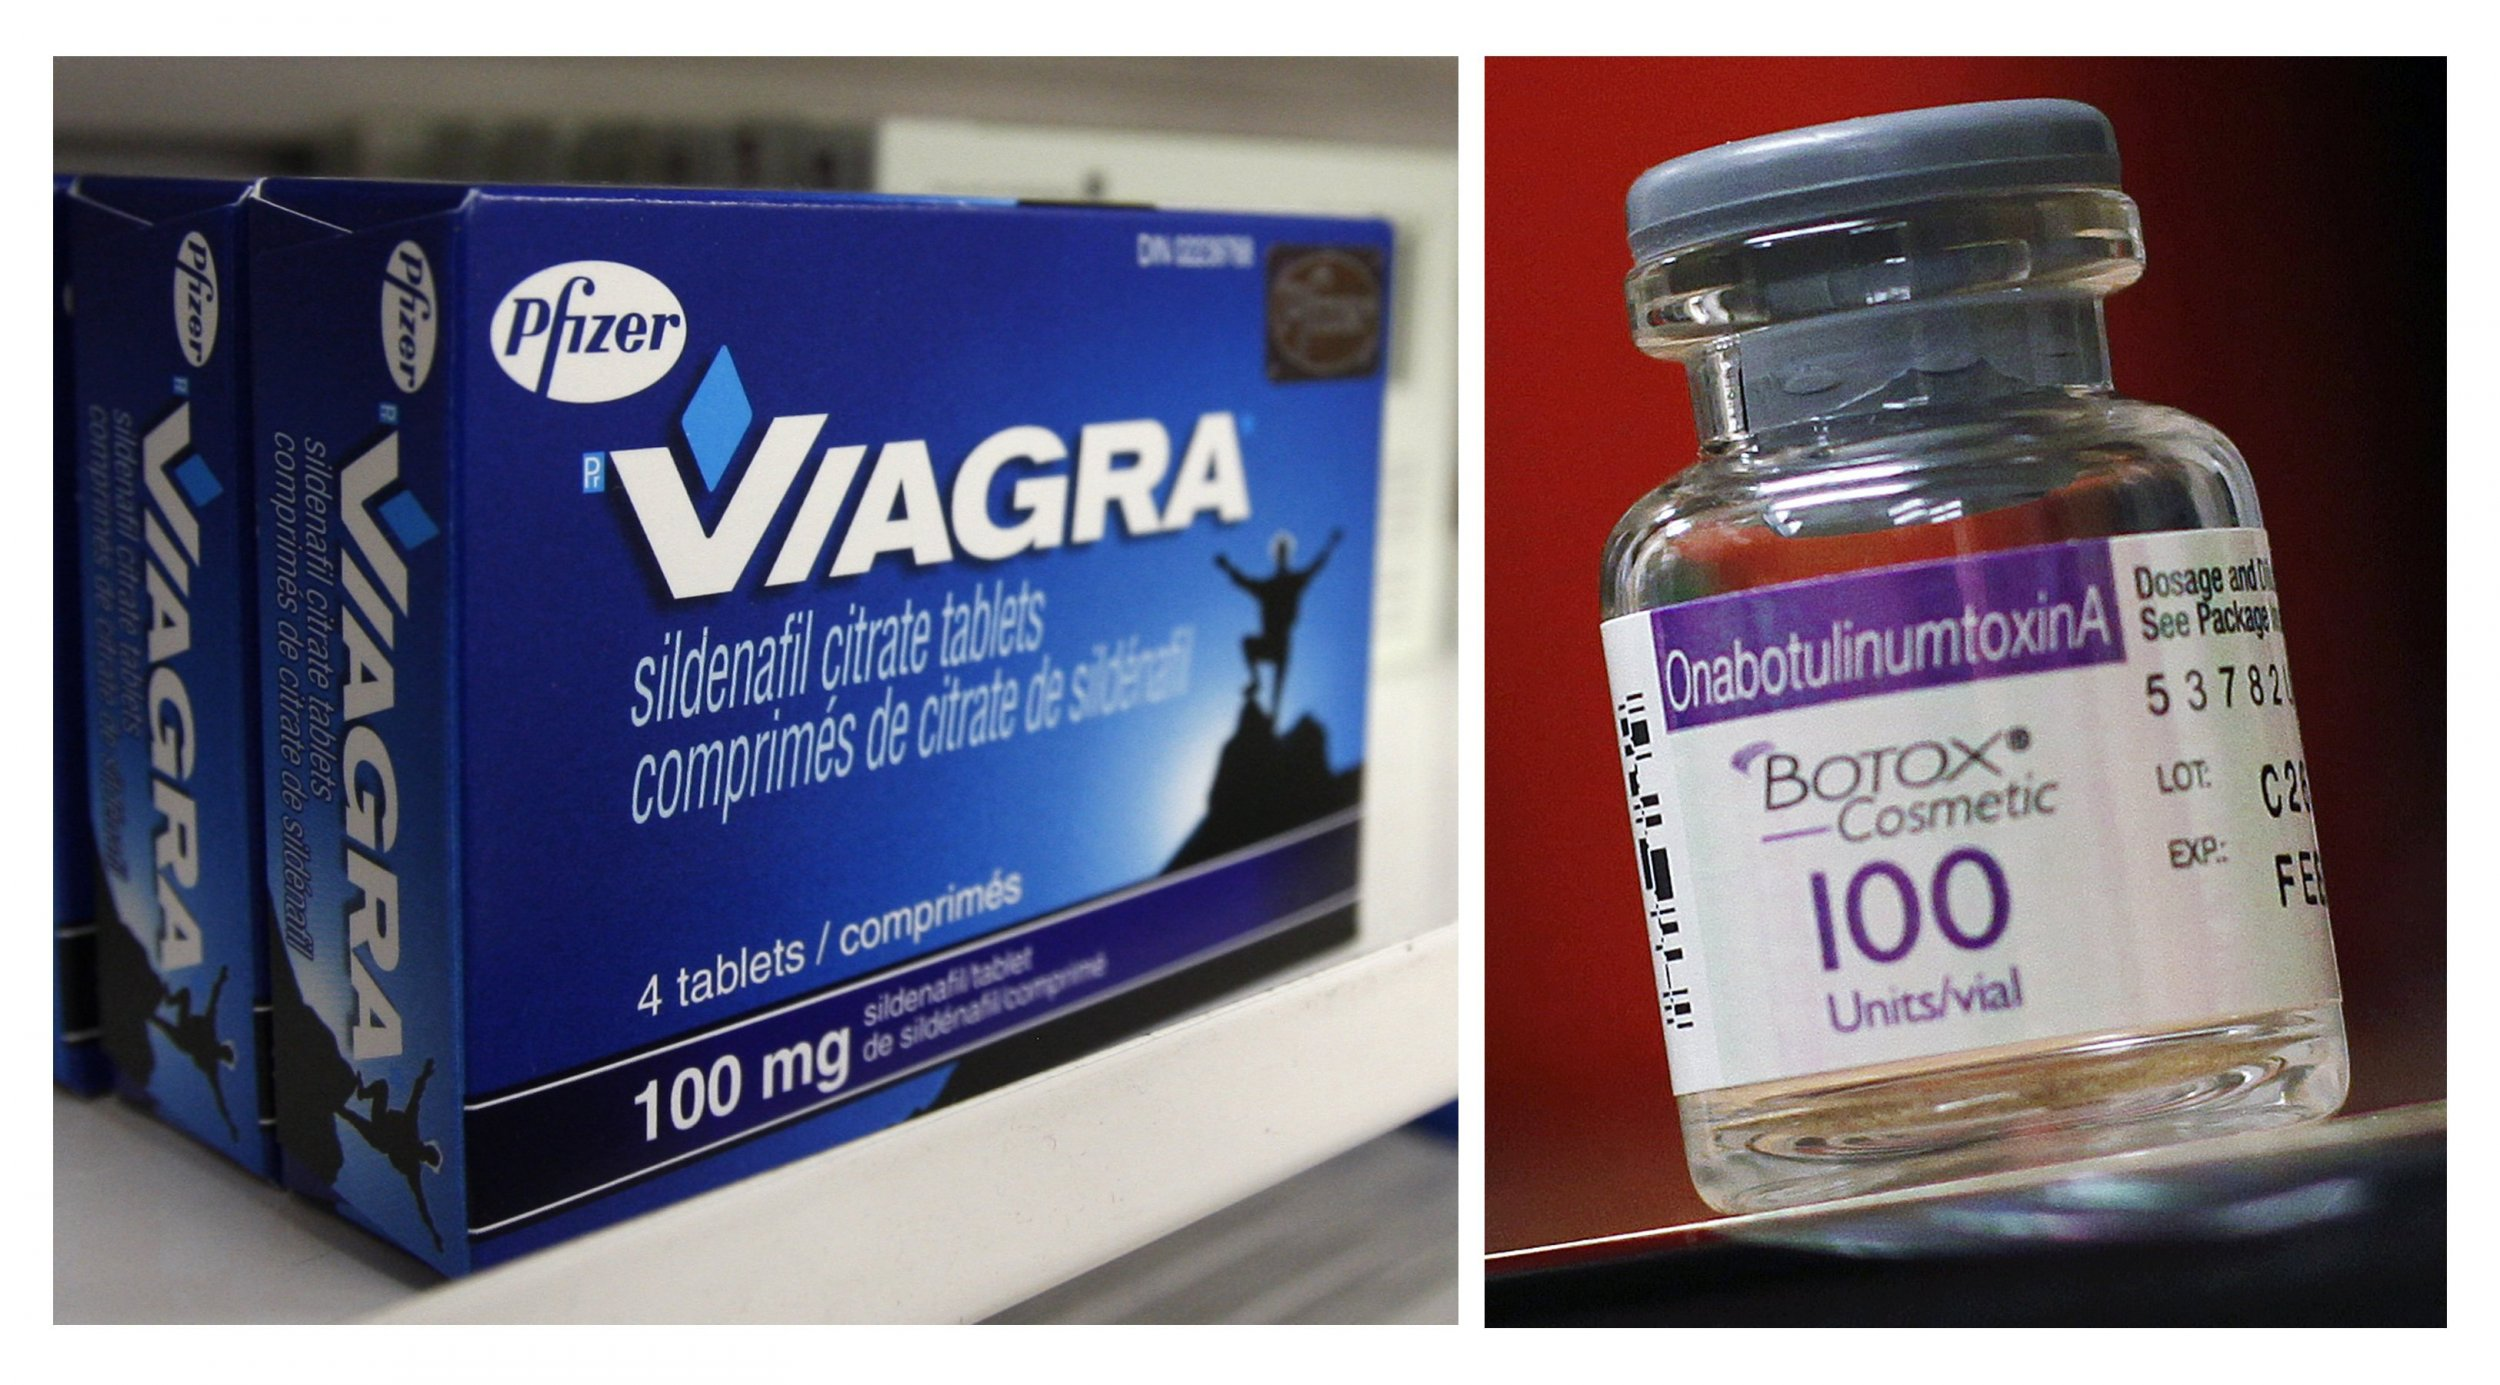 Pfizer products viagra